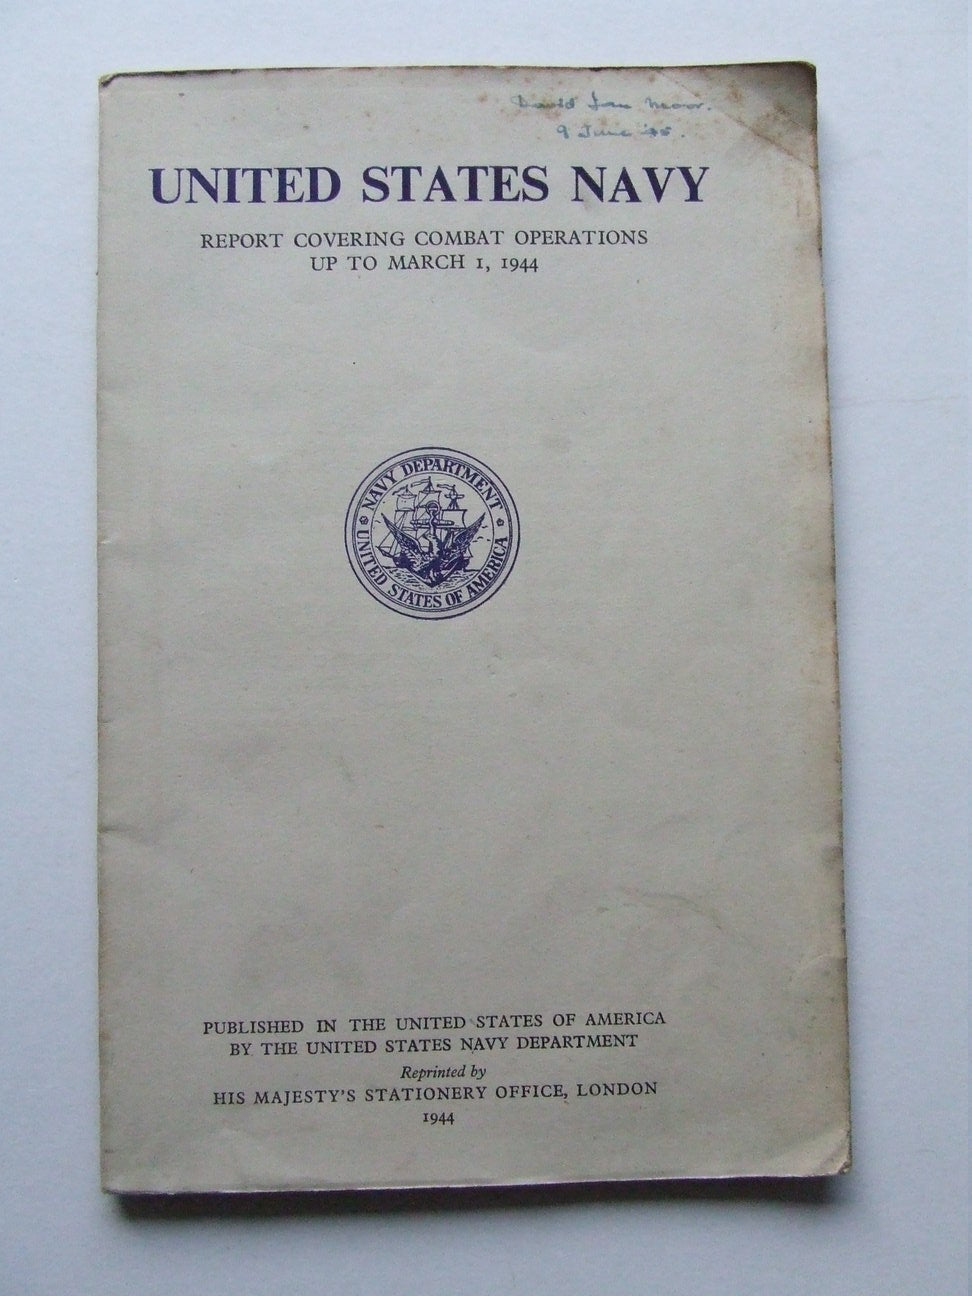 Report to the Secretary of the United States Navy, by Admiral Ernest J. King